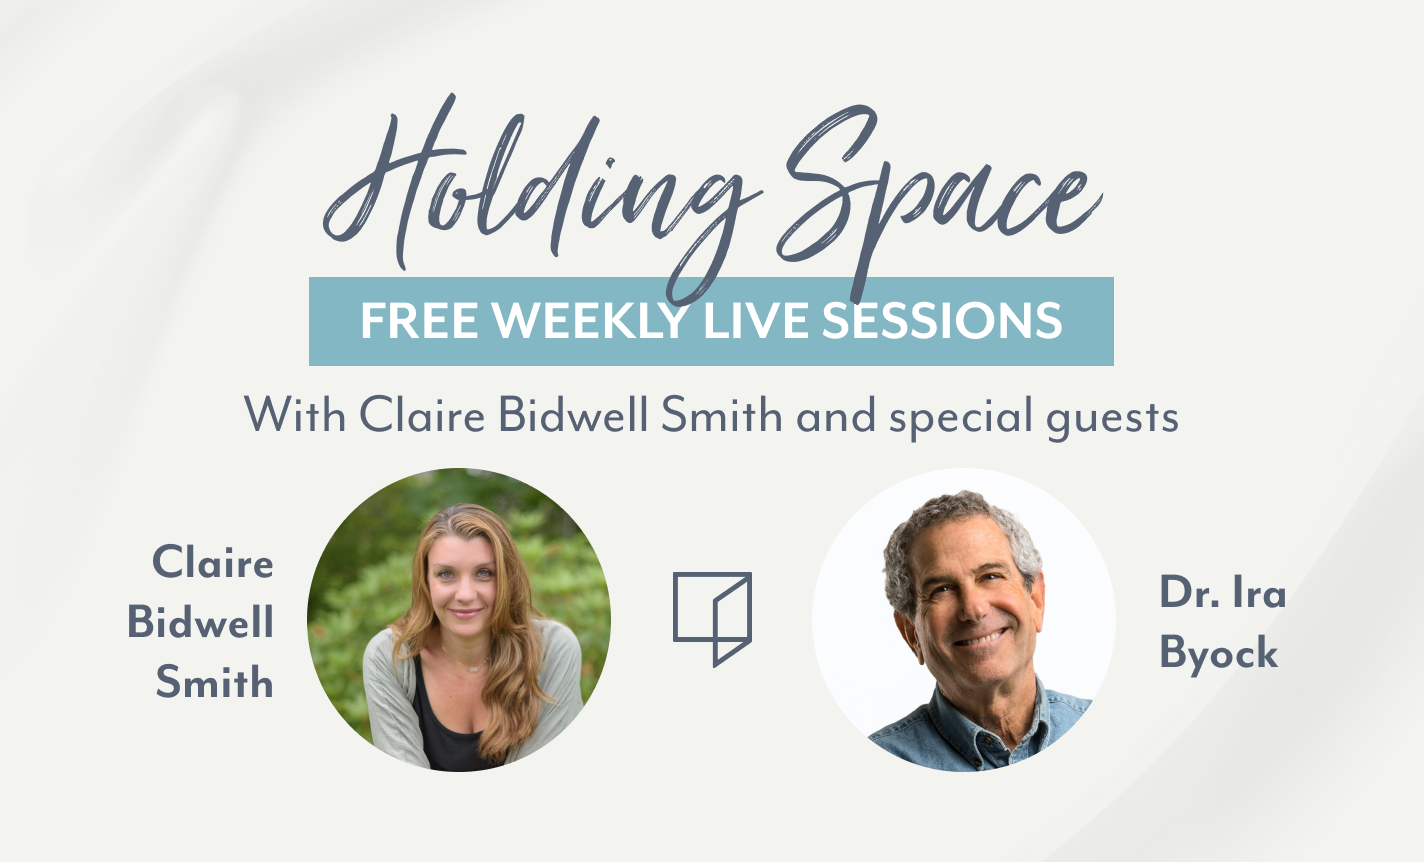 Holding Steady with Claire Bidwell Smith and Dr. Ira Byock